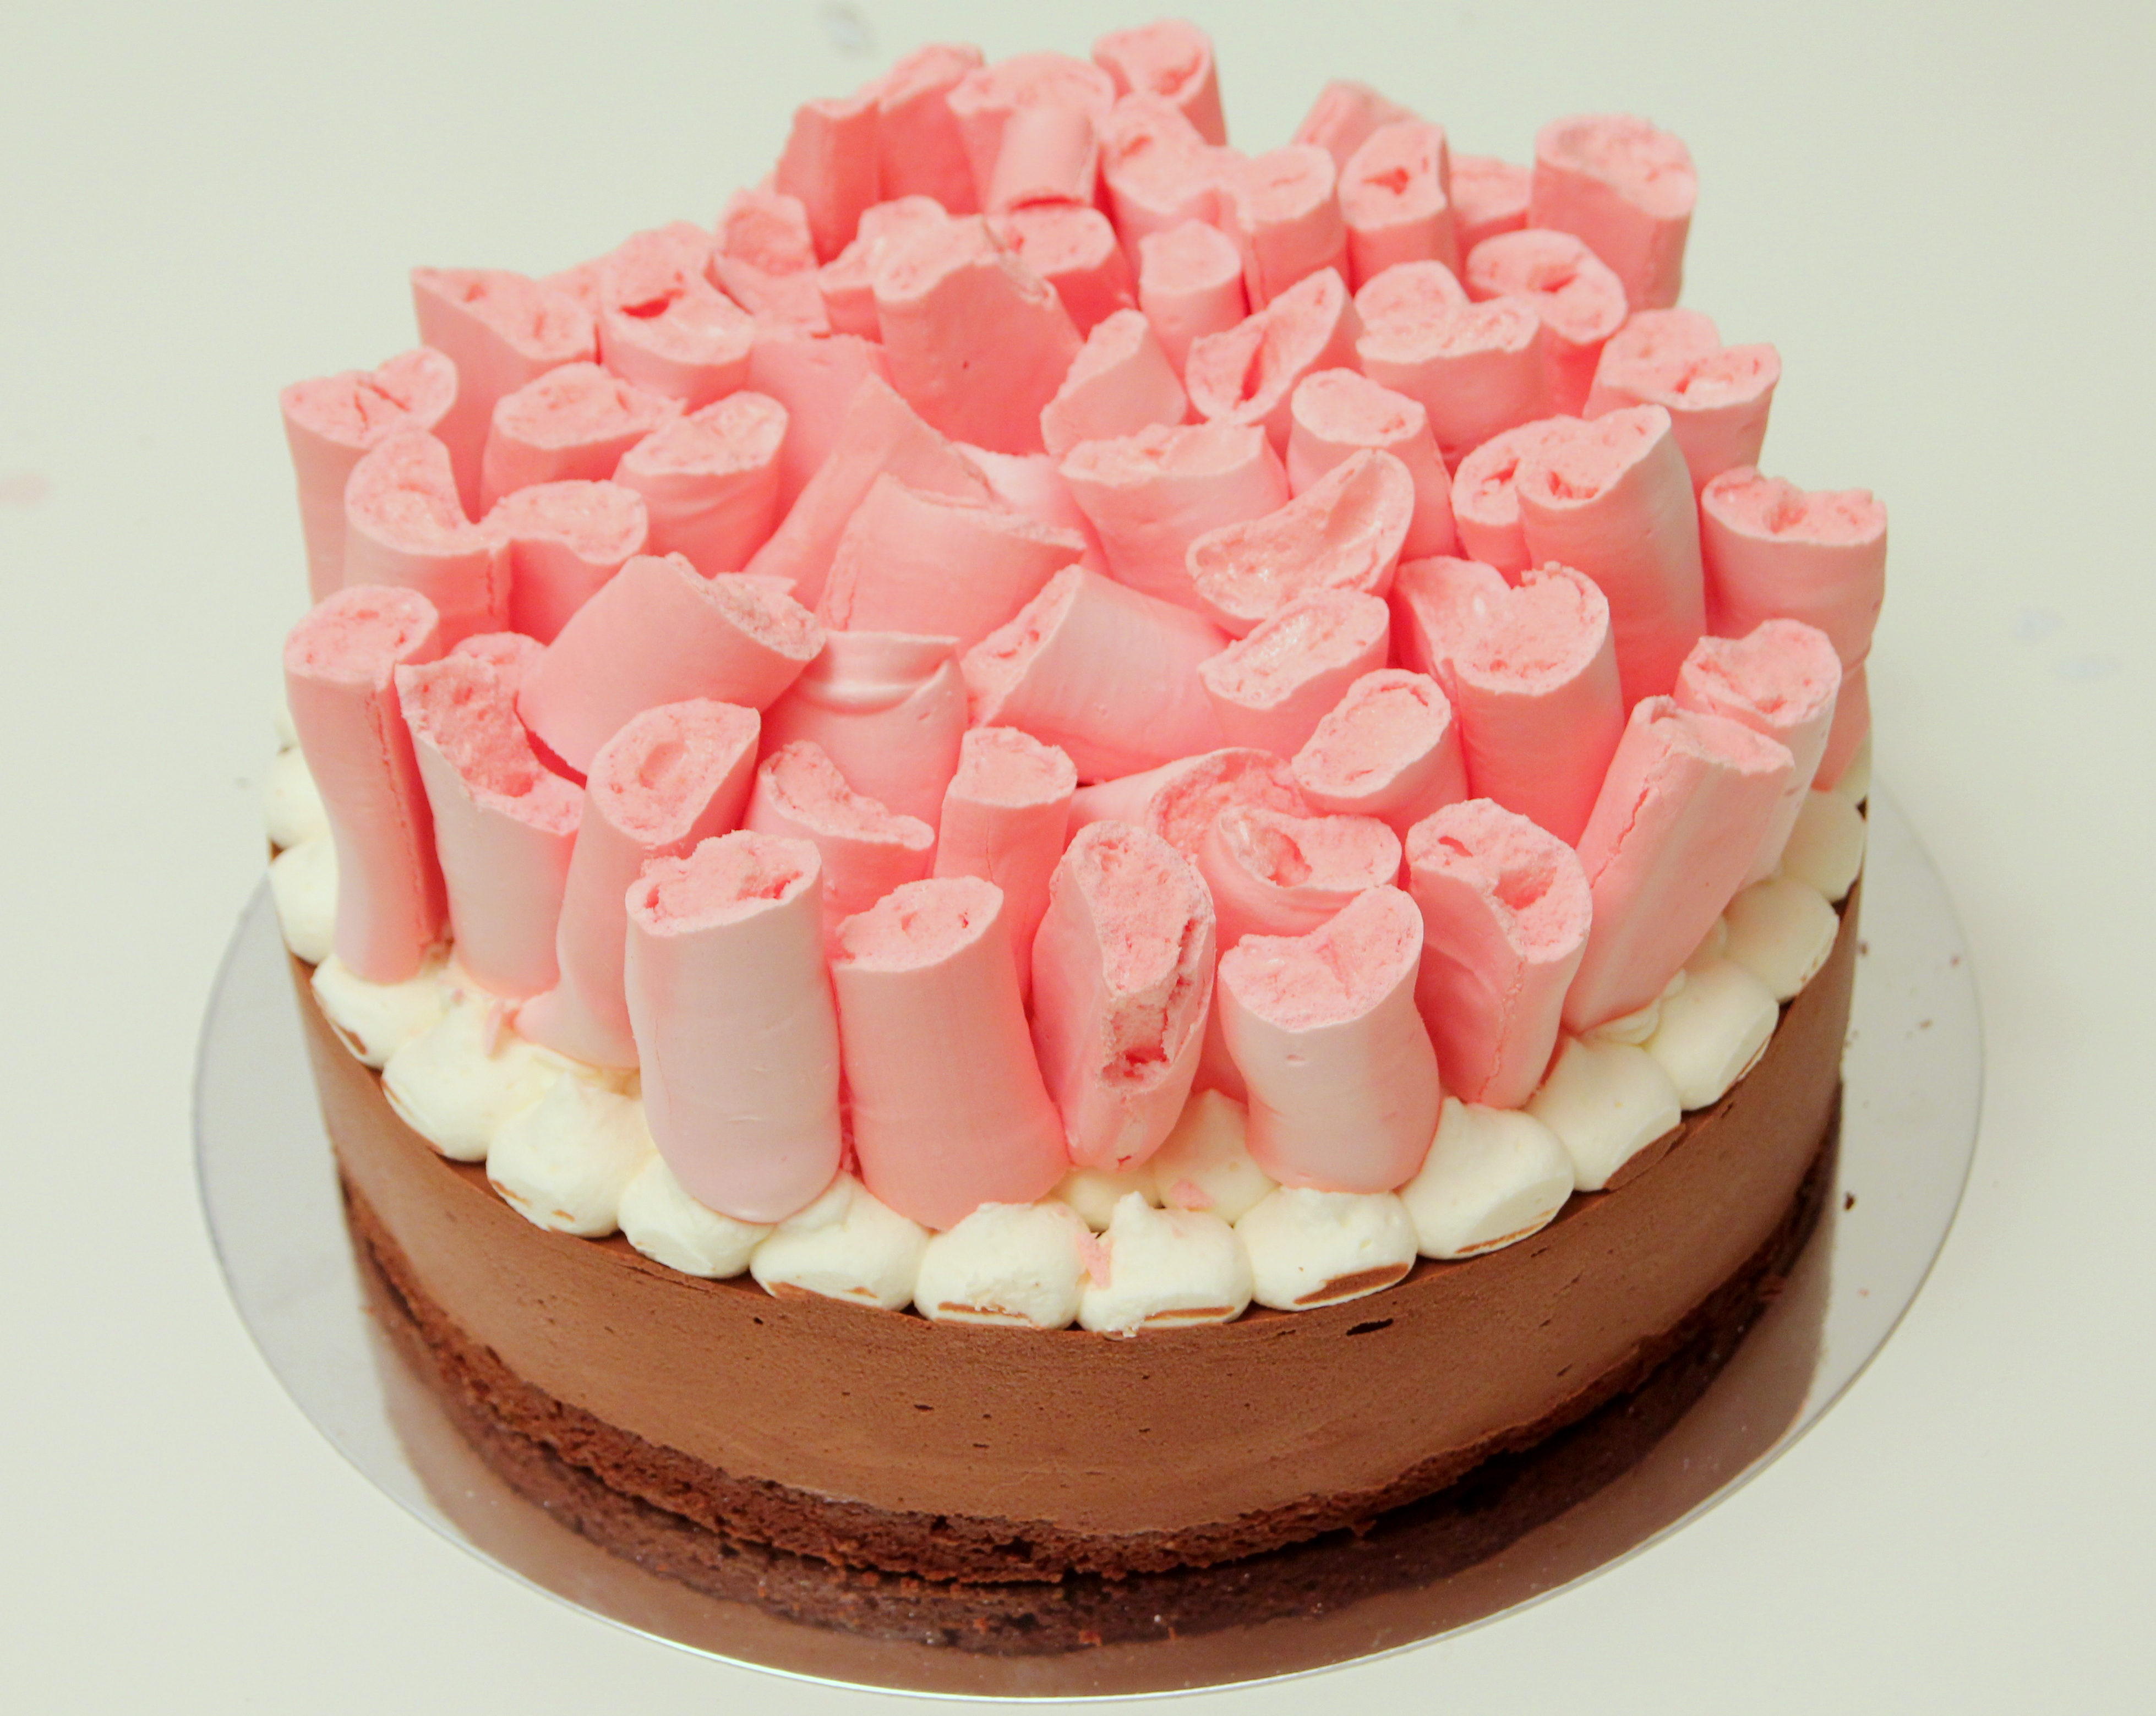 Chocolate Mousse Cake with Pink Meringue